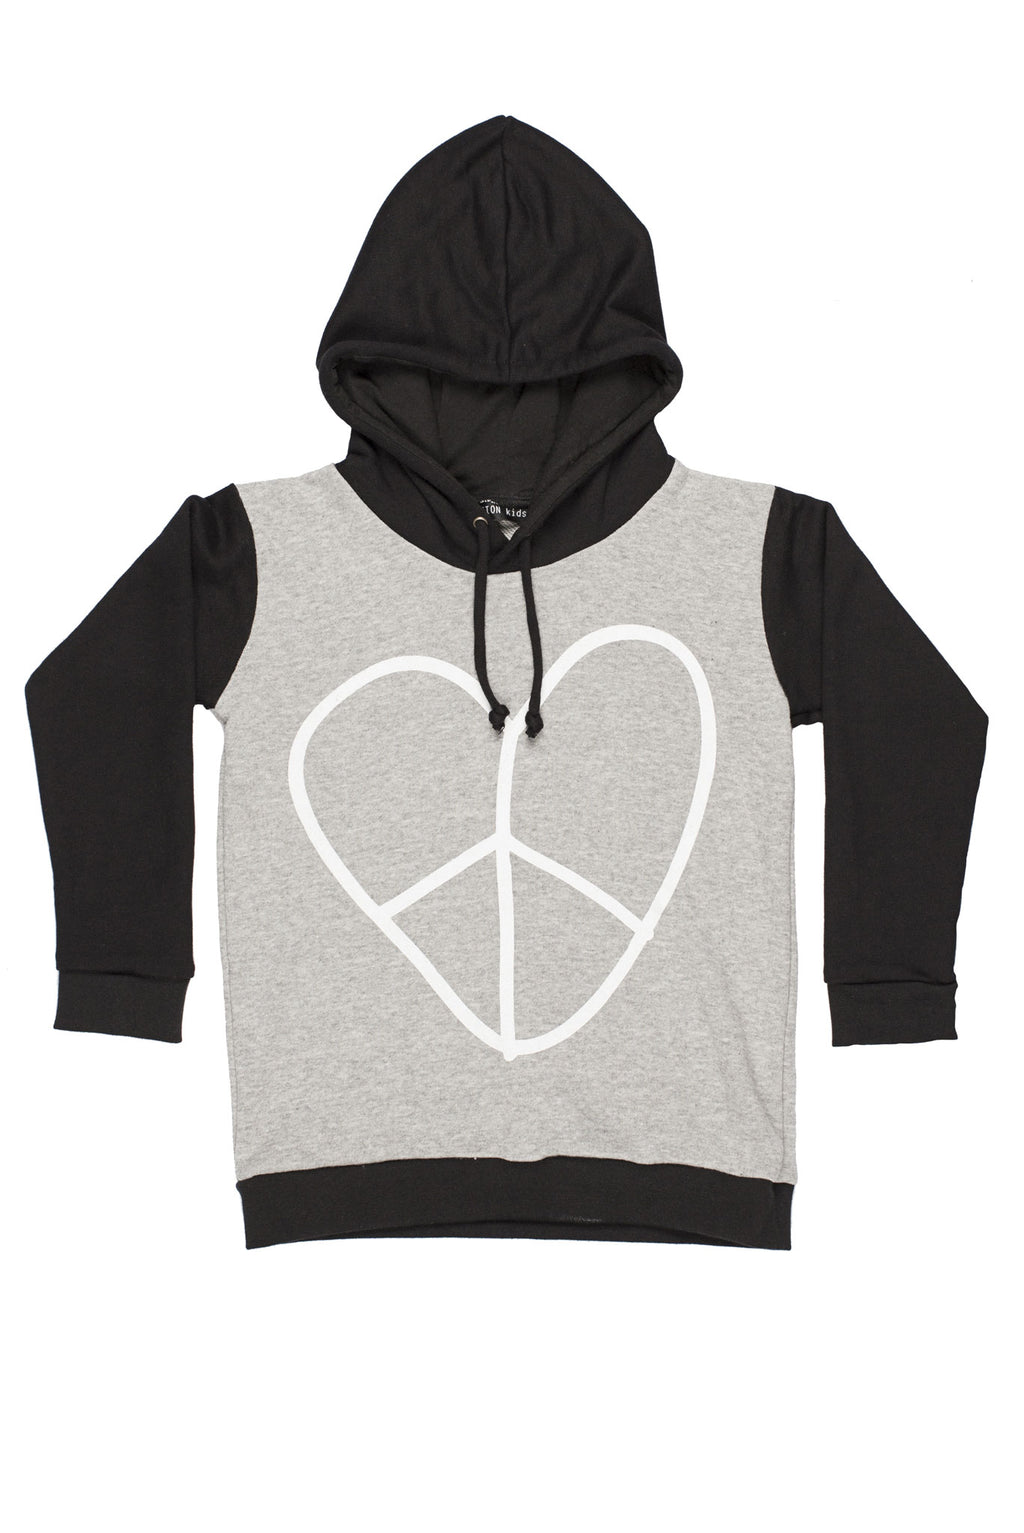 Heart Peace Sweater Hoodie Black/Grey - Zuttion